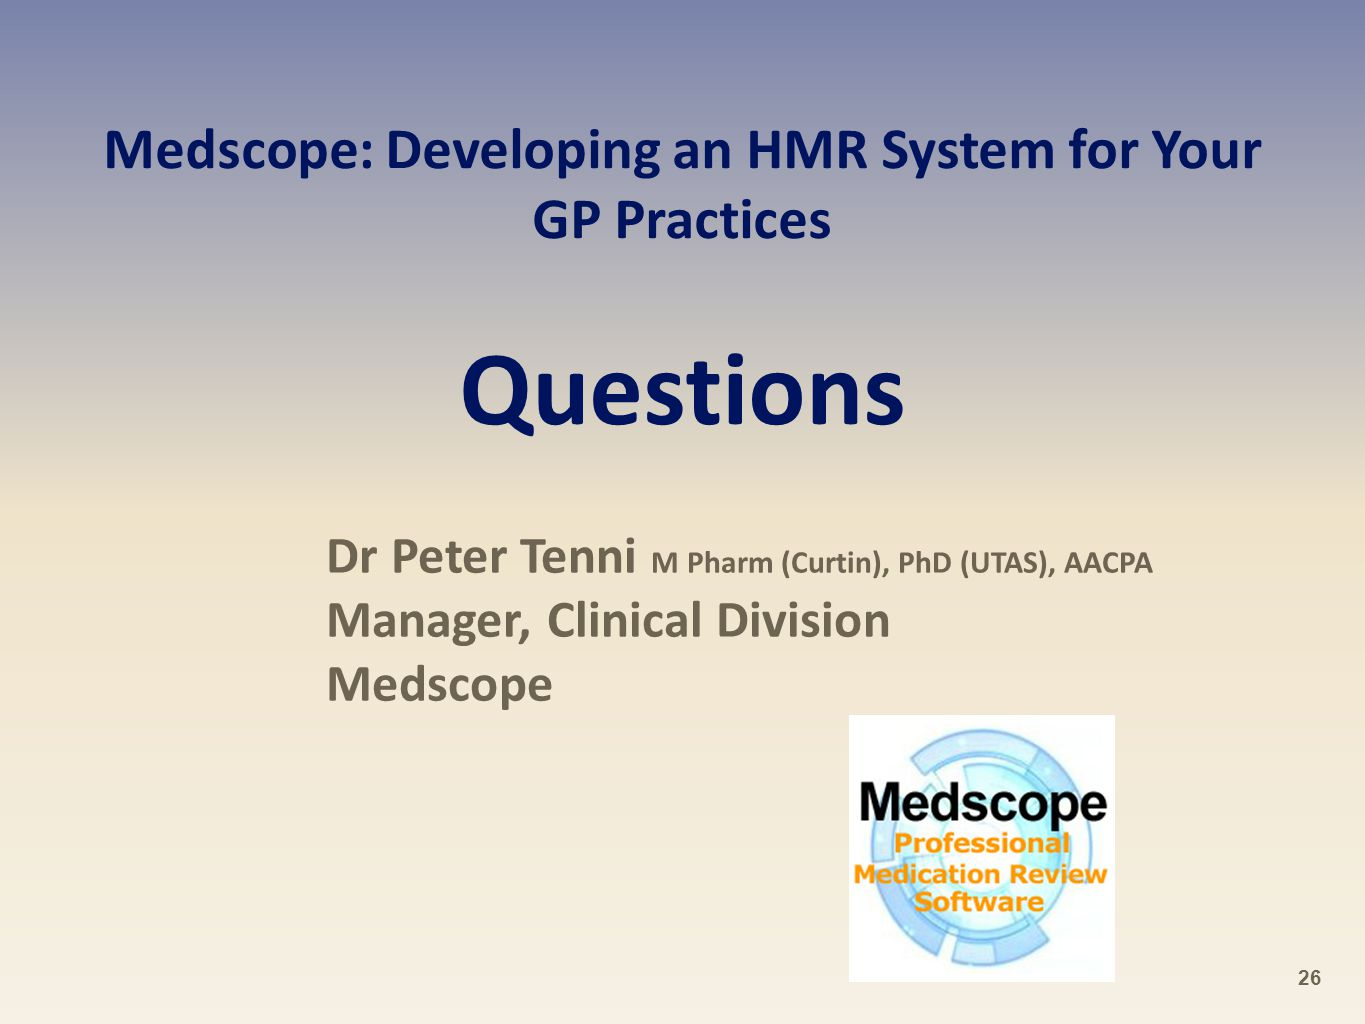 Medscope: Developing an HMR System for Your GP Practices Questions